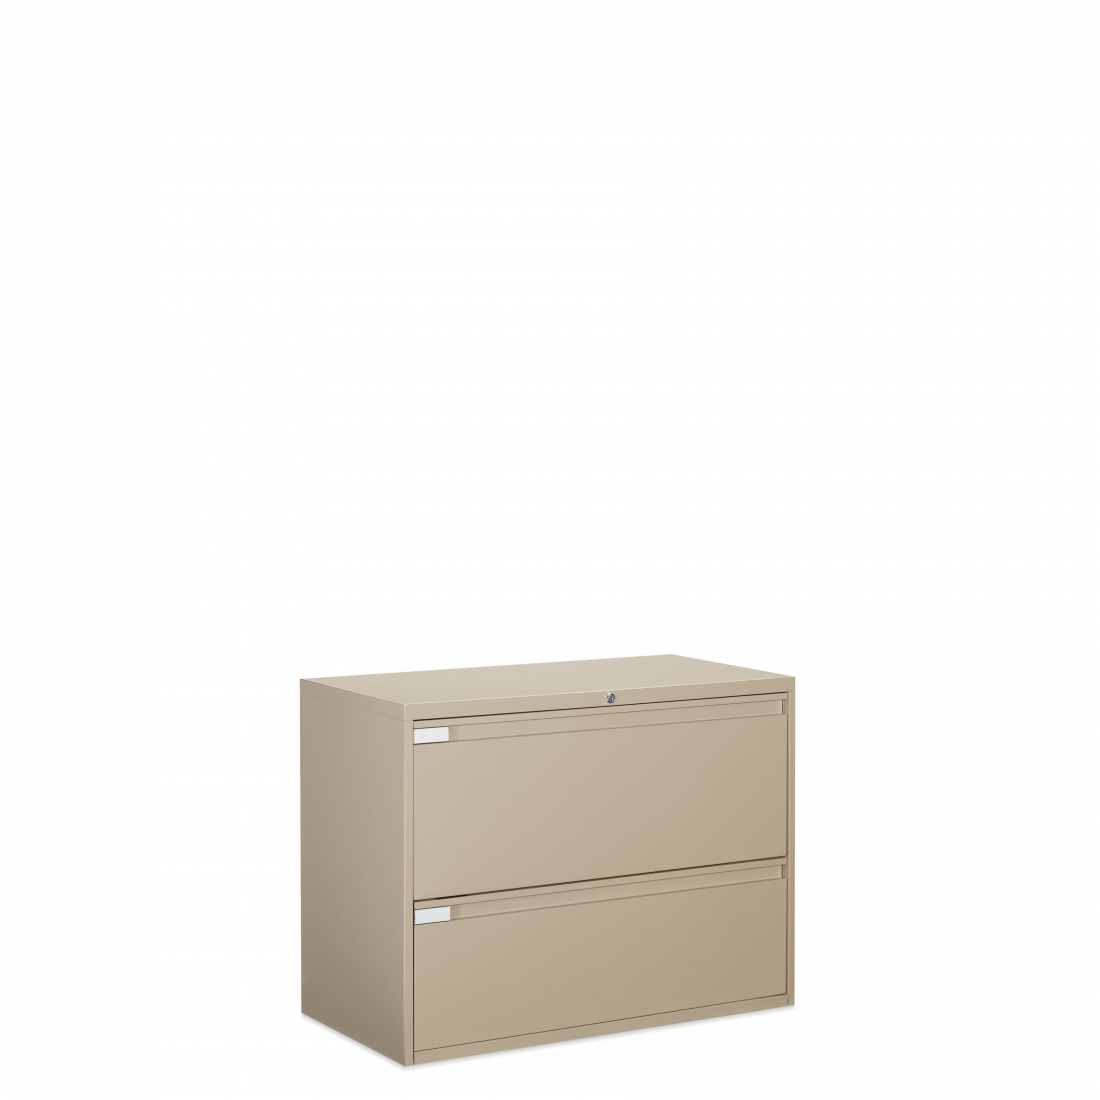 9300 Plus Series Professional lateral file capability with fixed or receding drawers and looped full pulls.